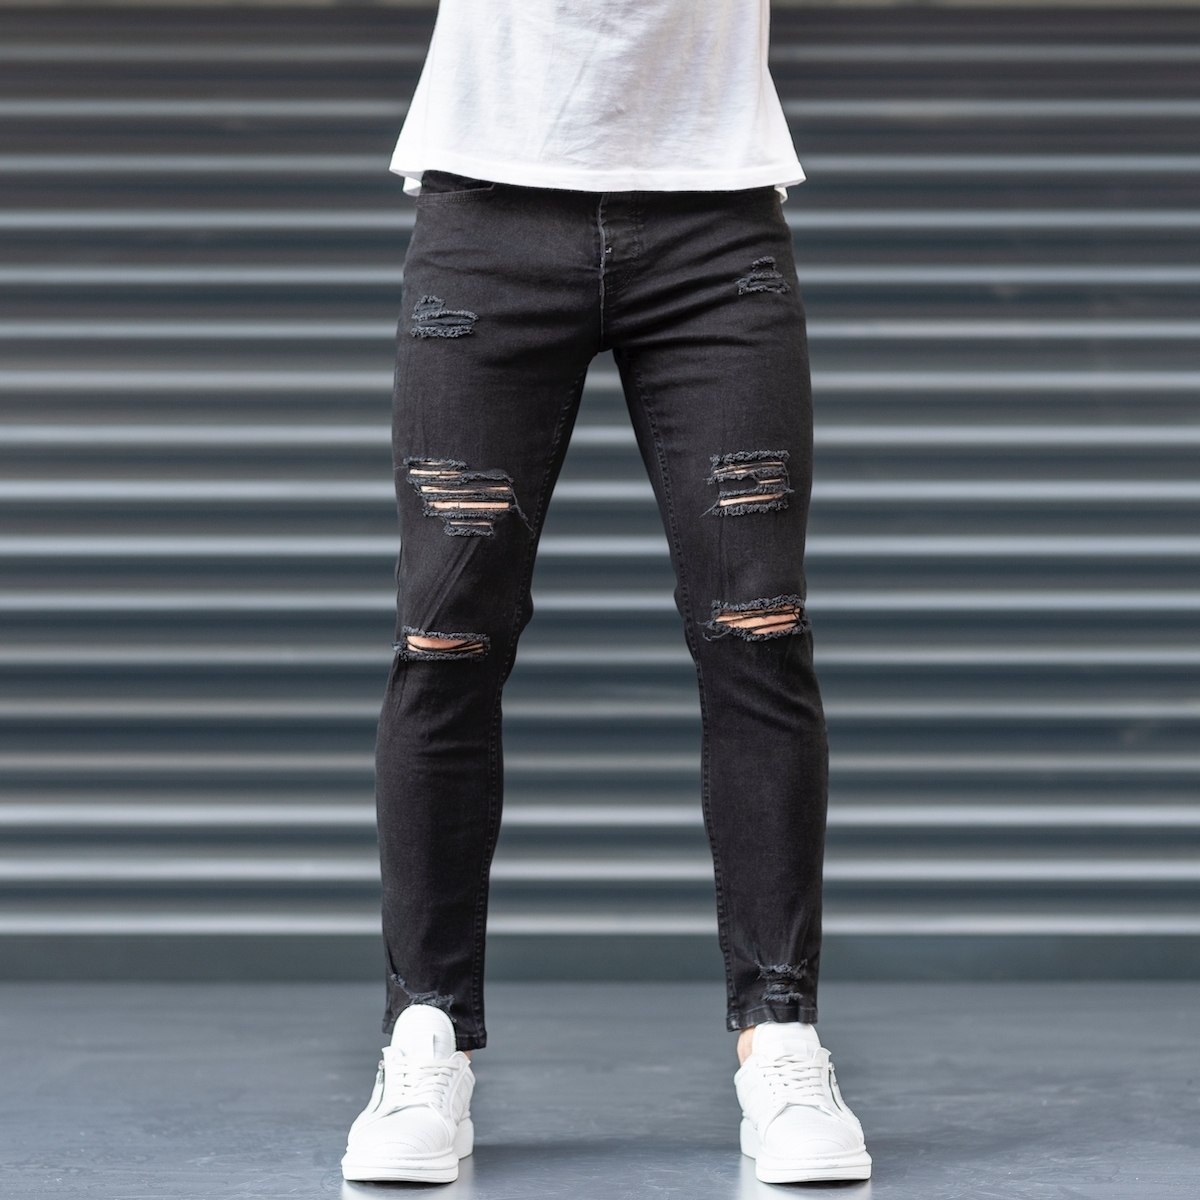 Men's Black Claw-Ripped Jeans